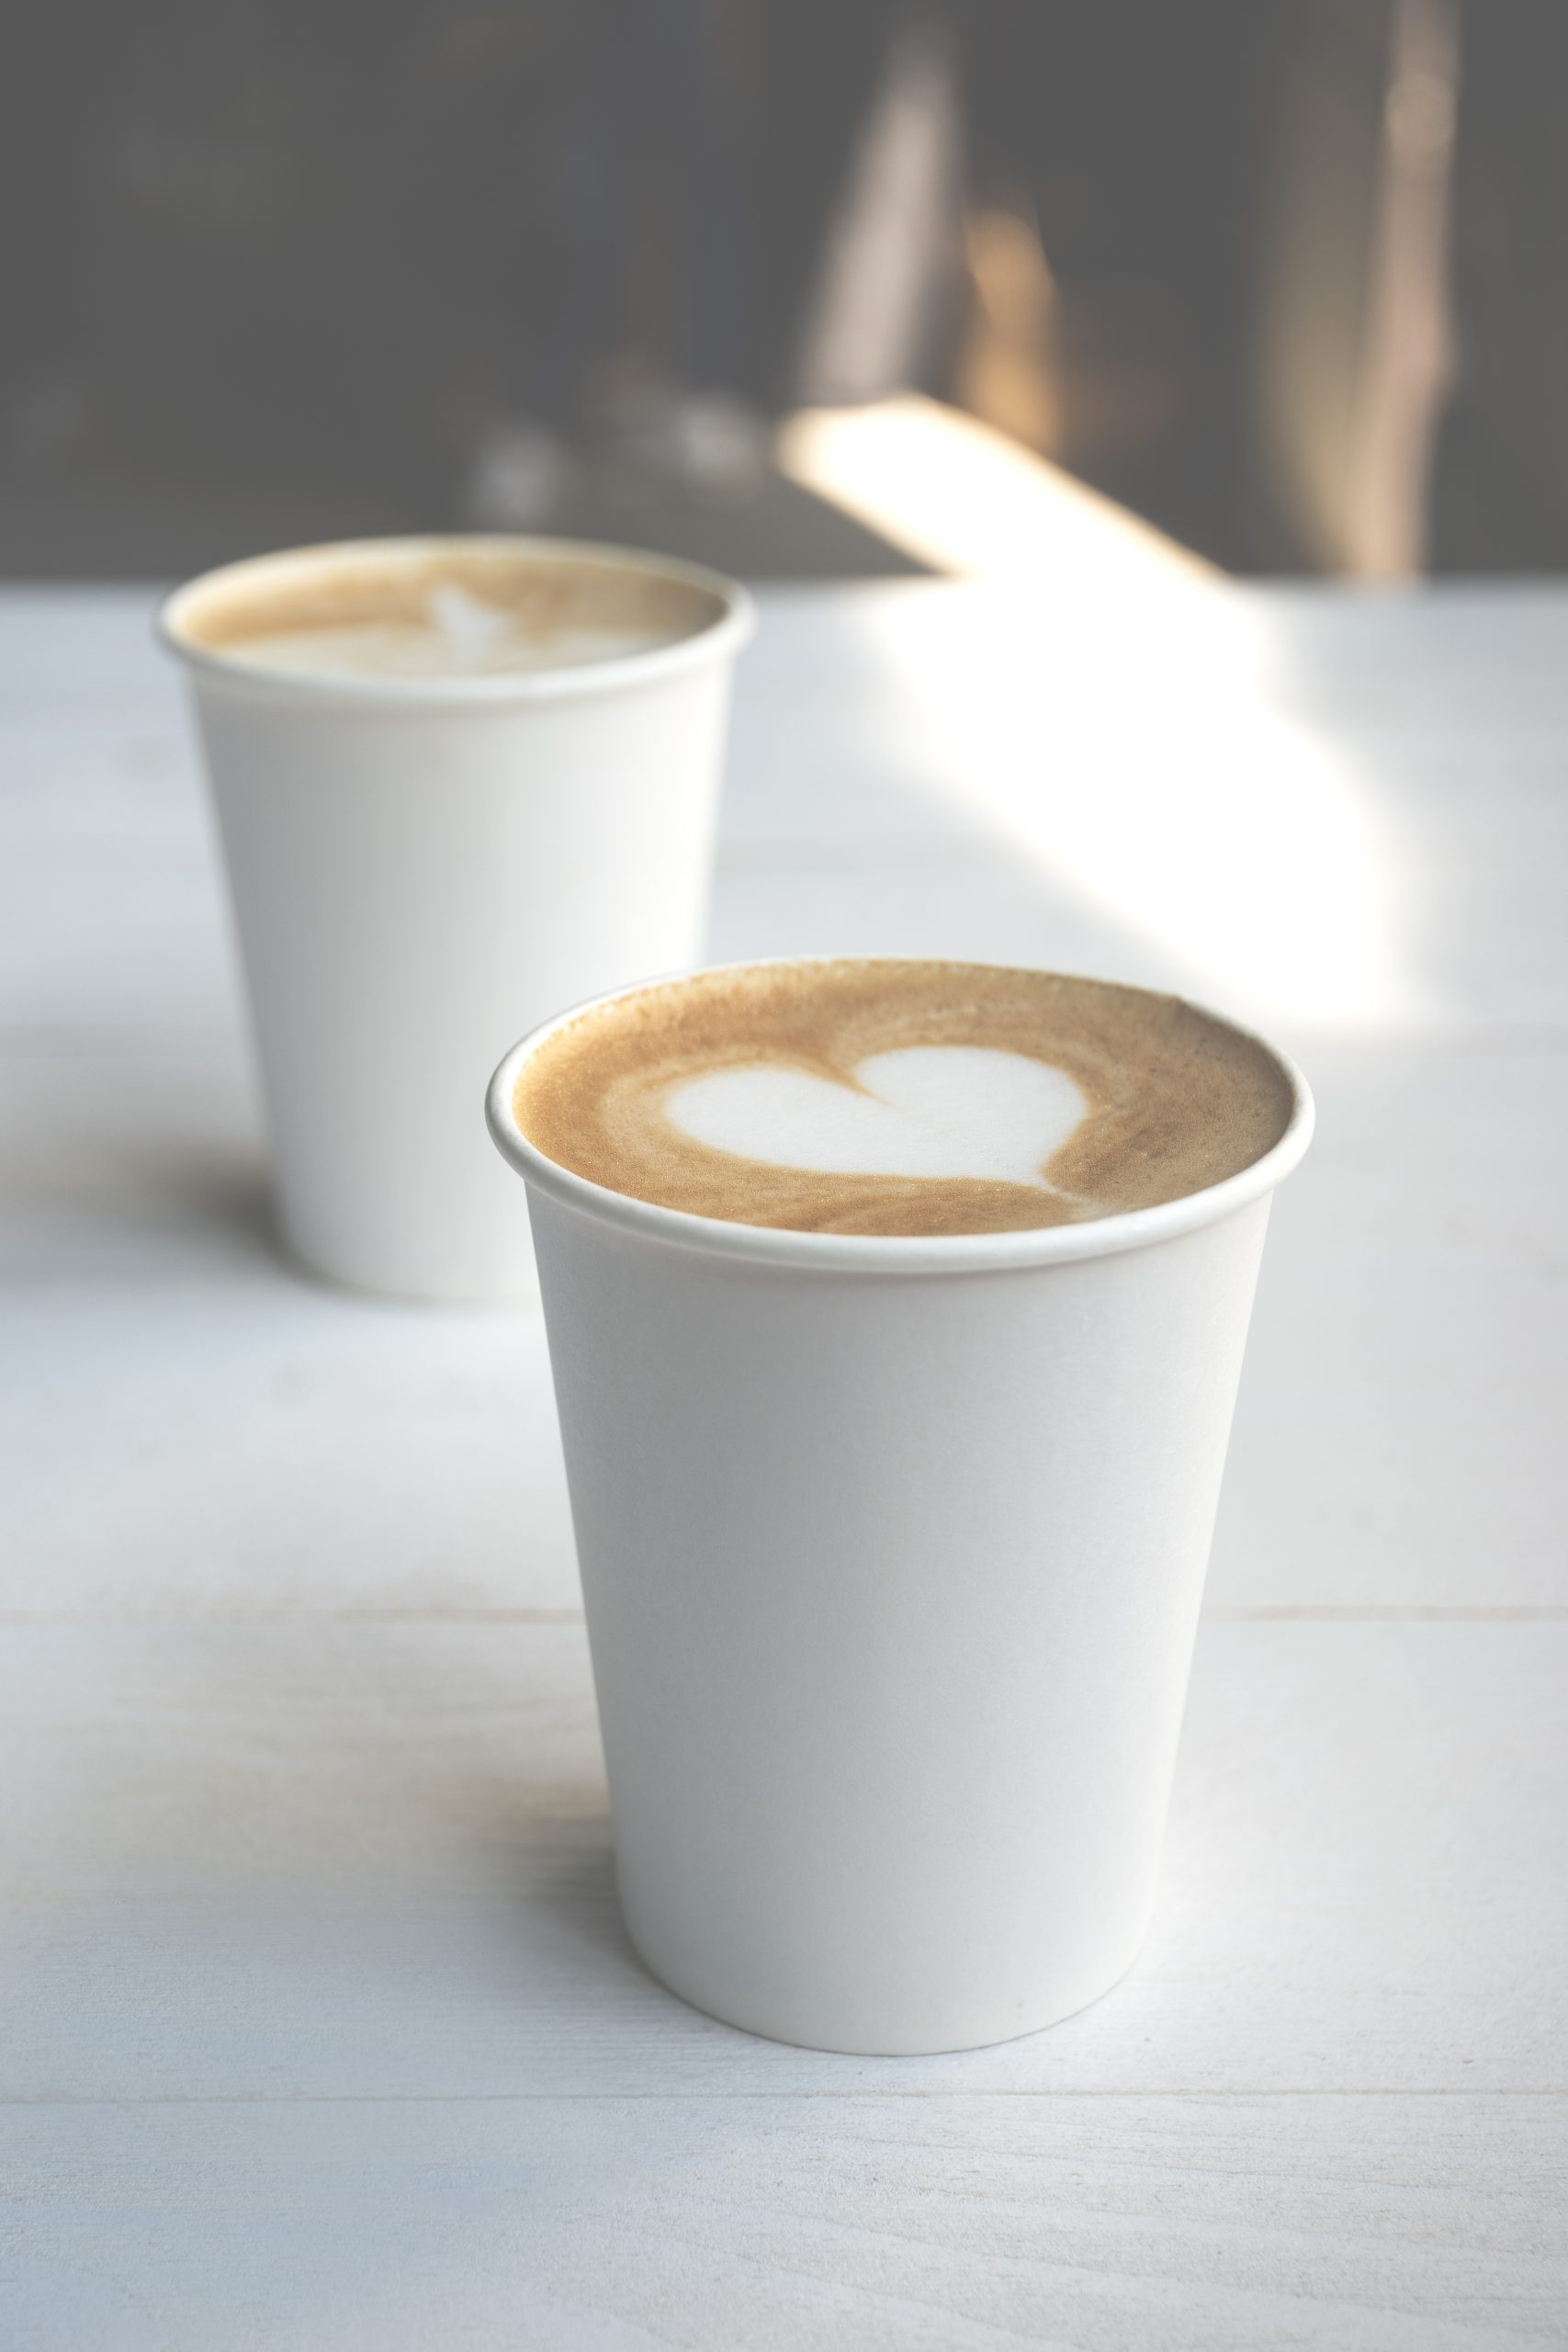 Two Identical cups of coffee